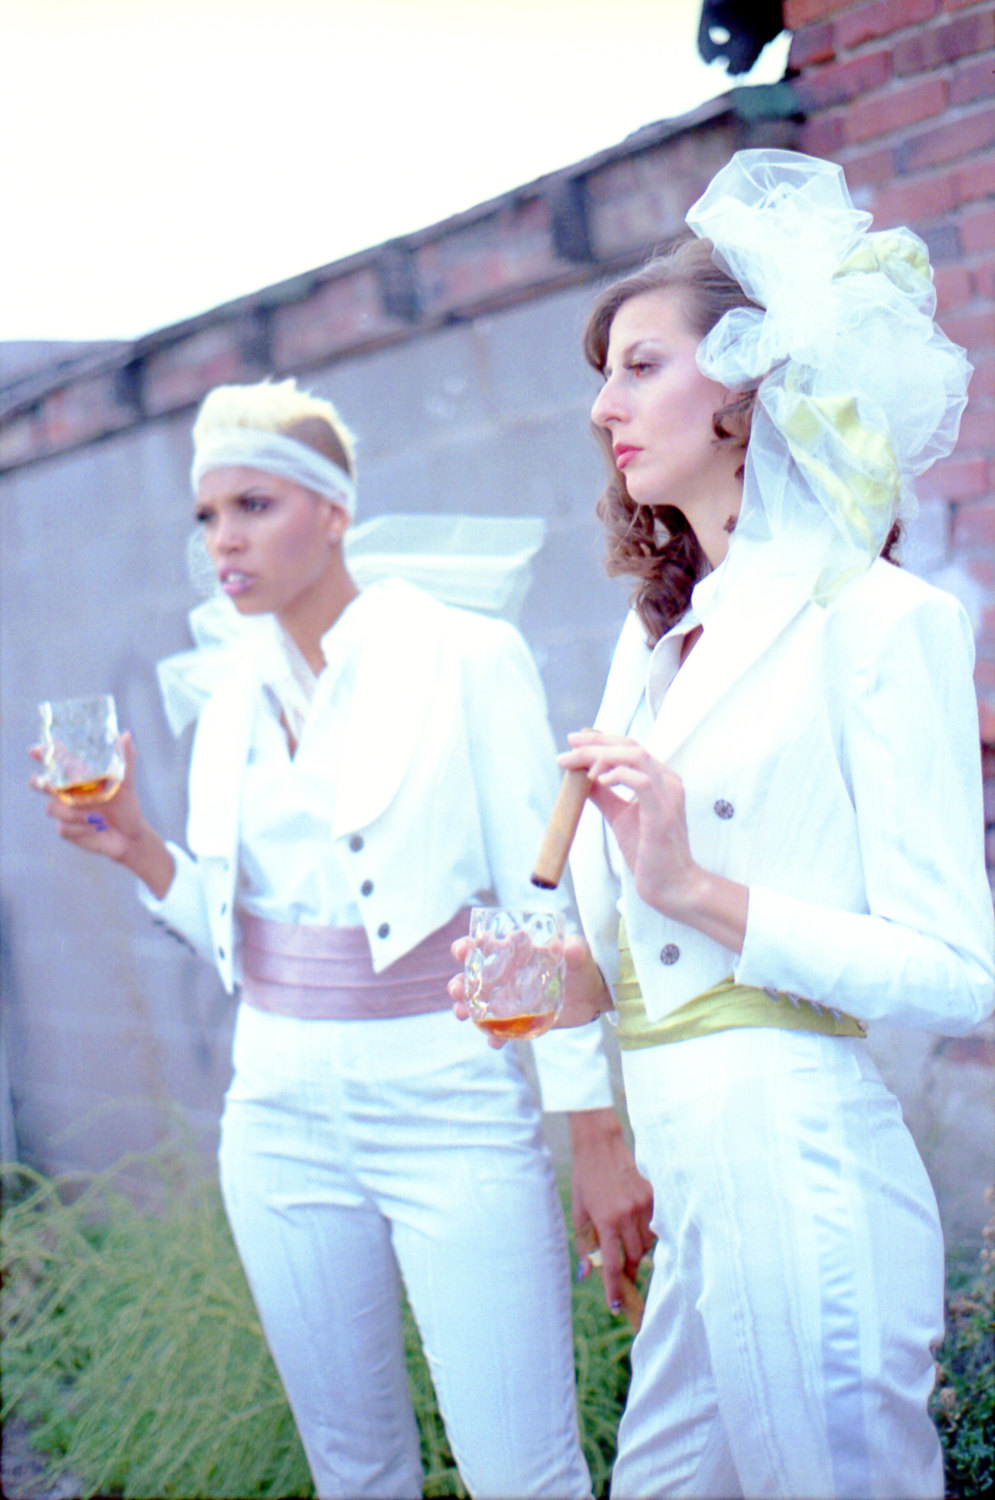 Women\'s Tailcoats and Tuxes—For Lesbian Weddings and Formal Events ...